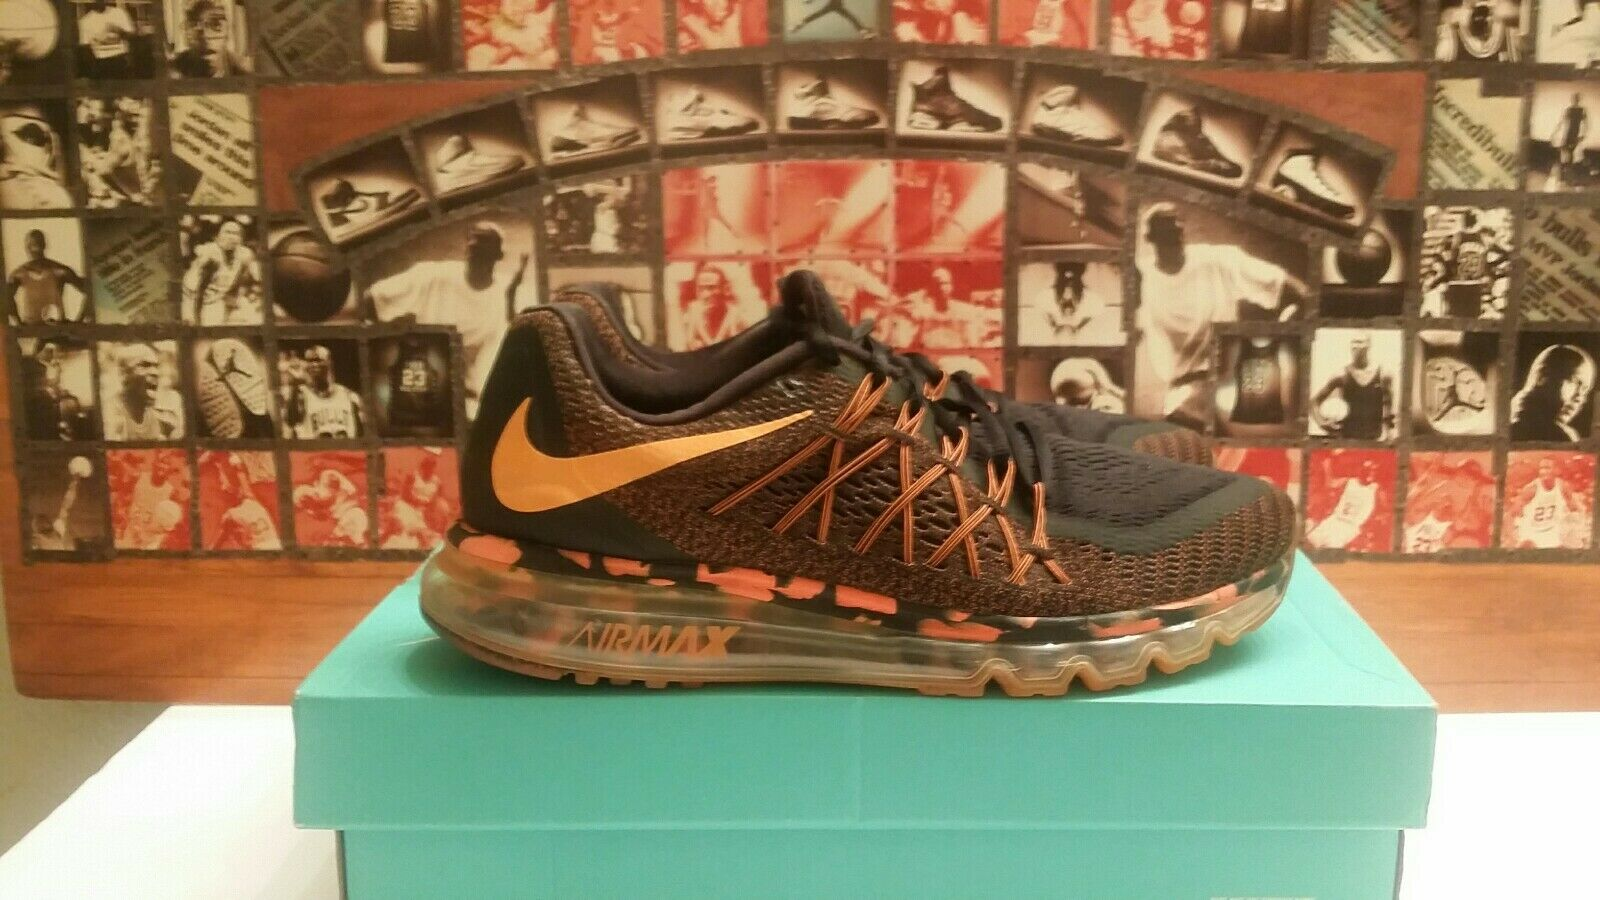 Nike Air Max 360 Premium Black   Total orange 749373-008 Running shoes Sz 10